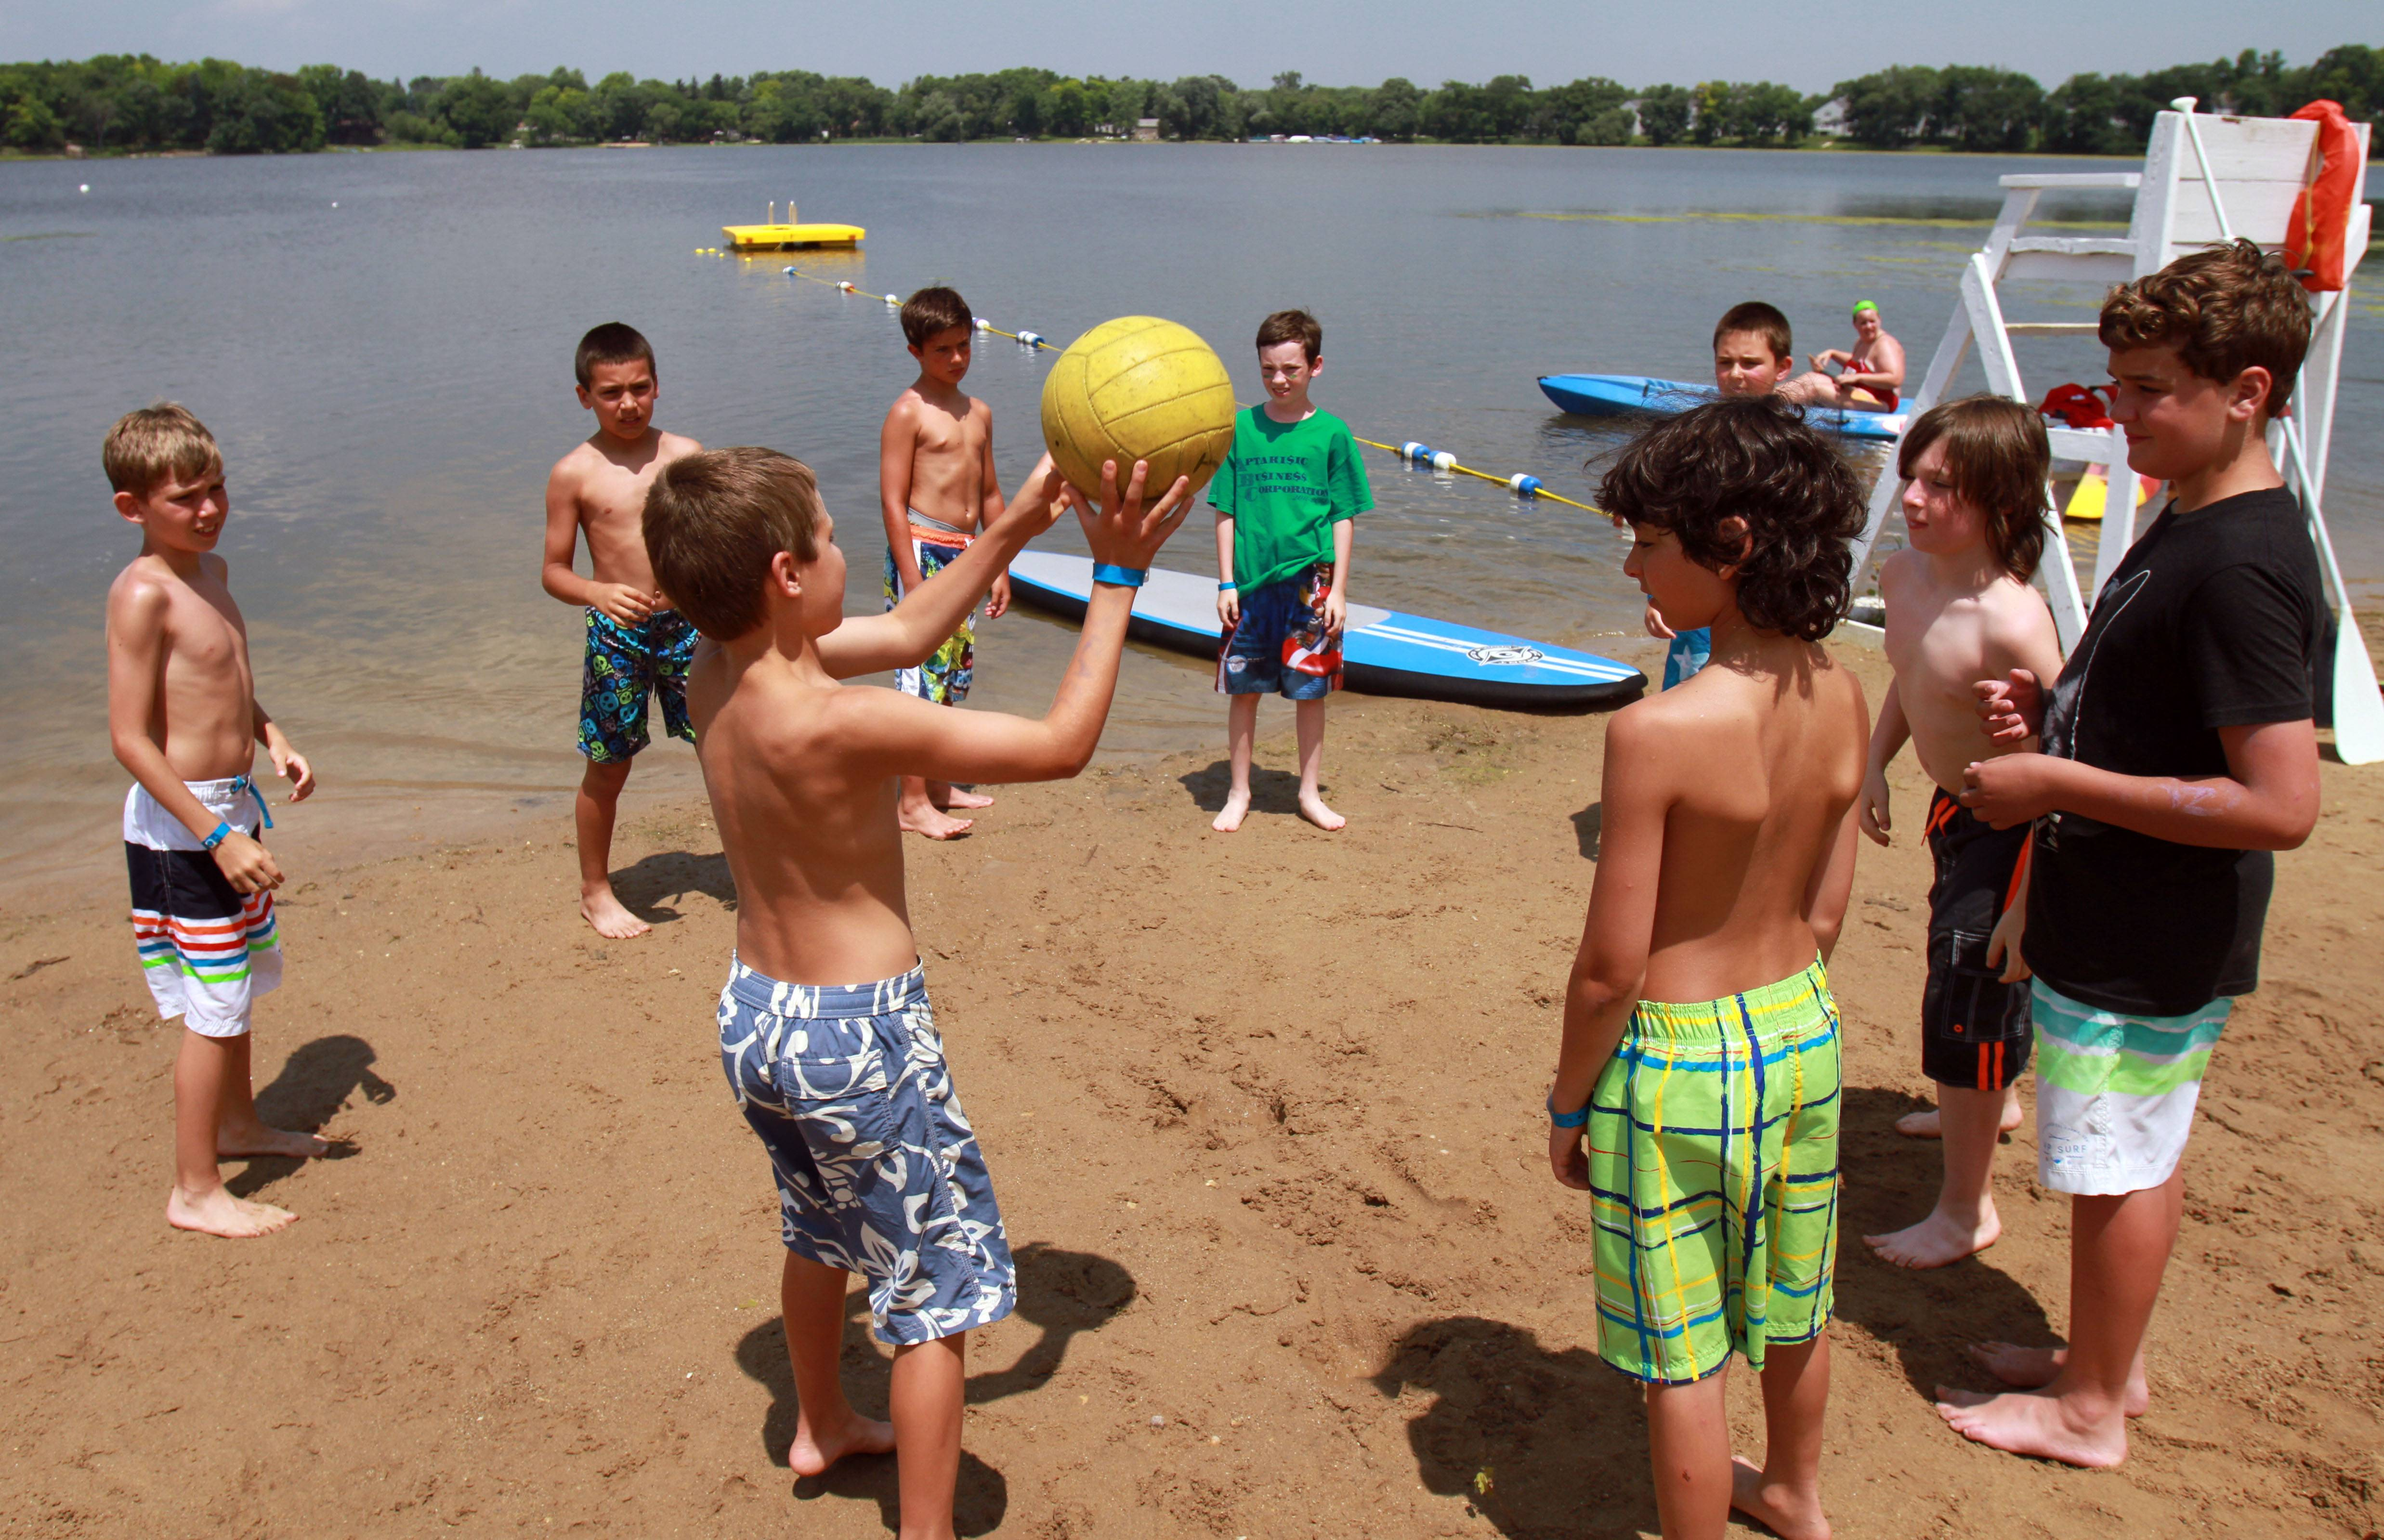 Boys play a game on the beach at Camp Henry Horner in Ingleside. The camp is celebrating its 100th year with an alumni anniversary celebration on July 20.